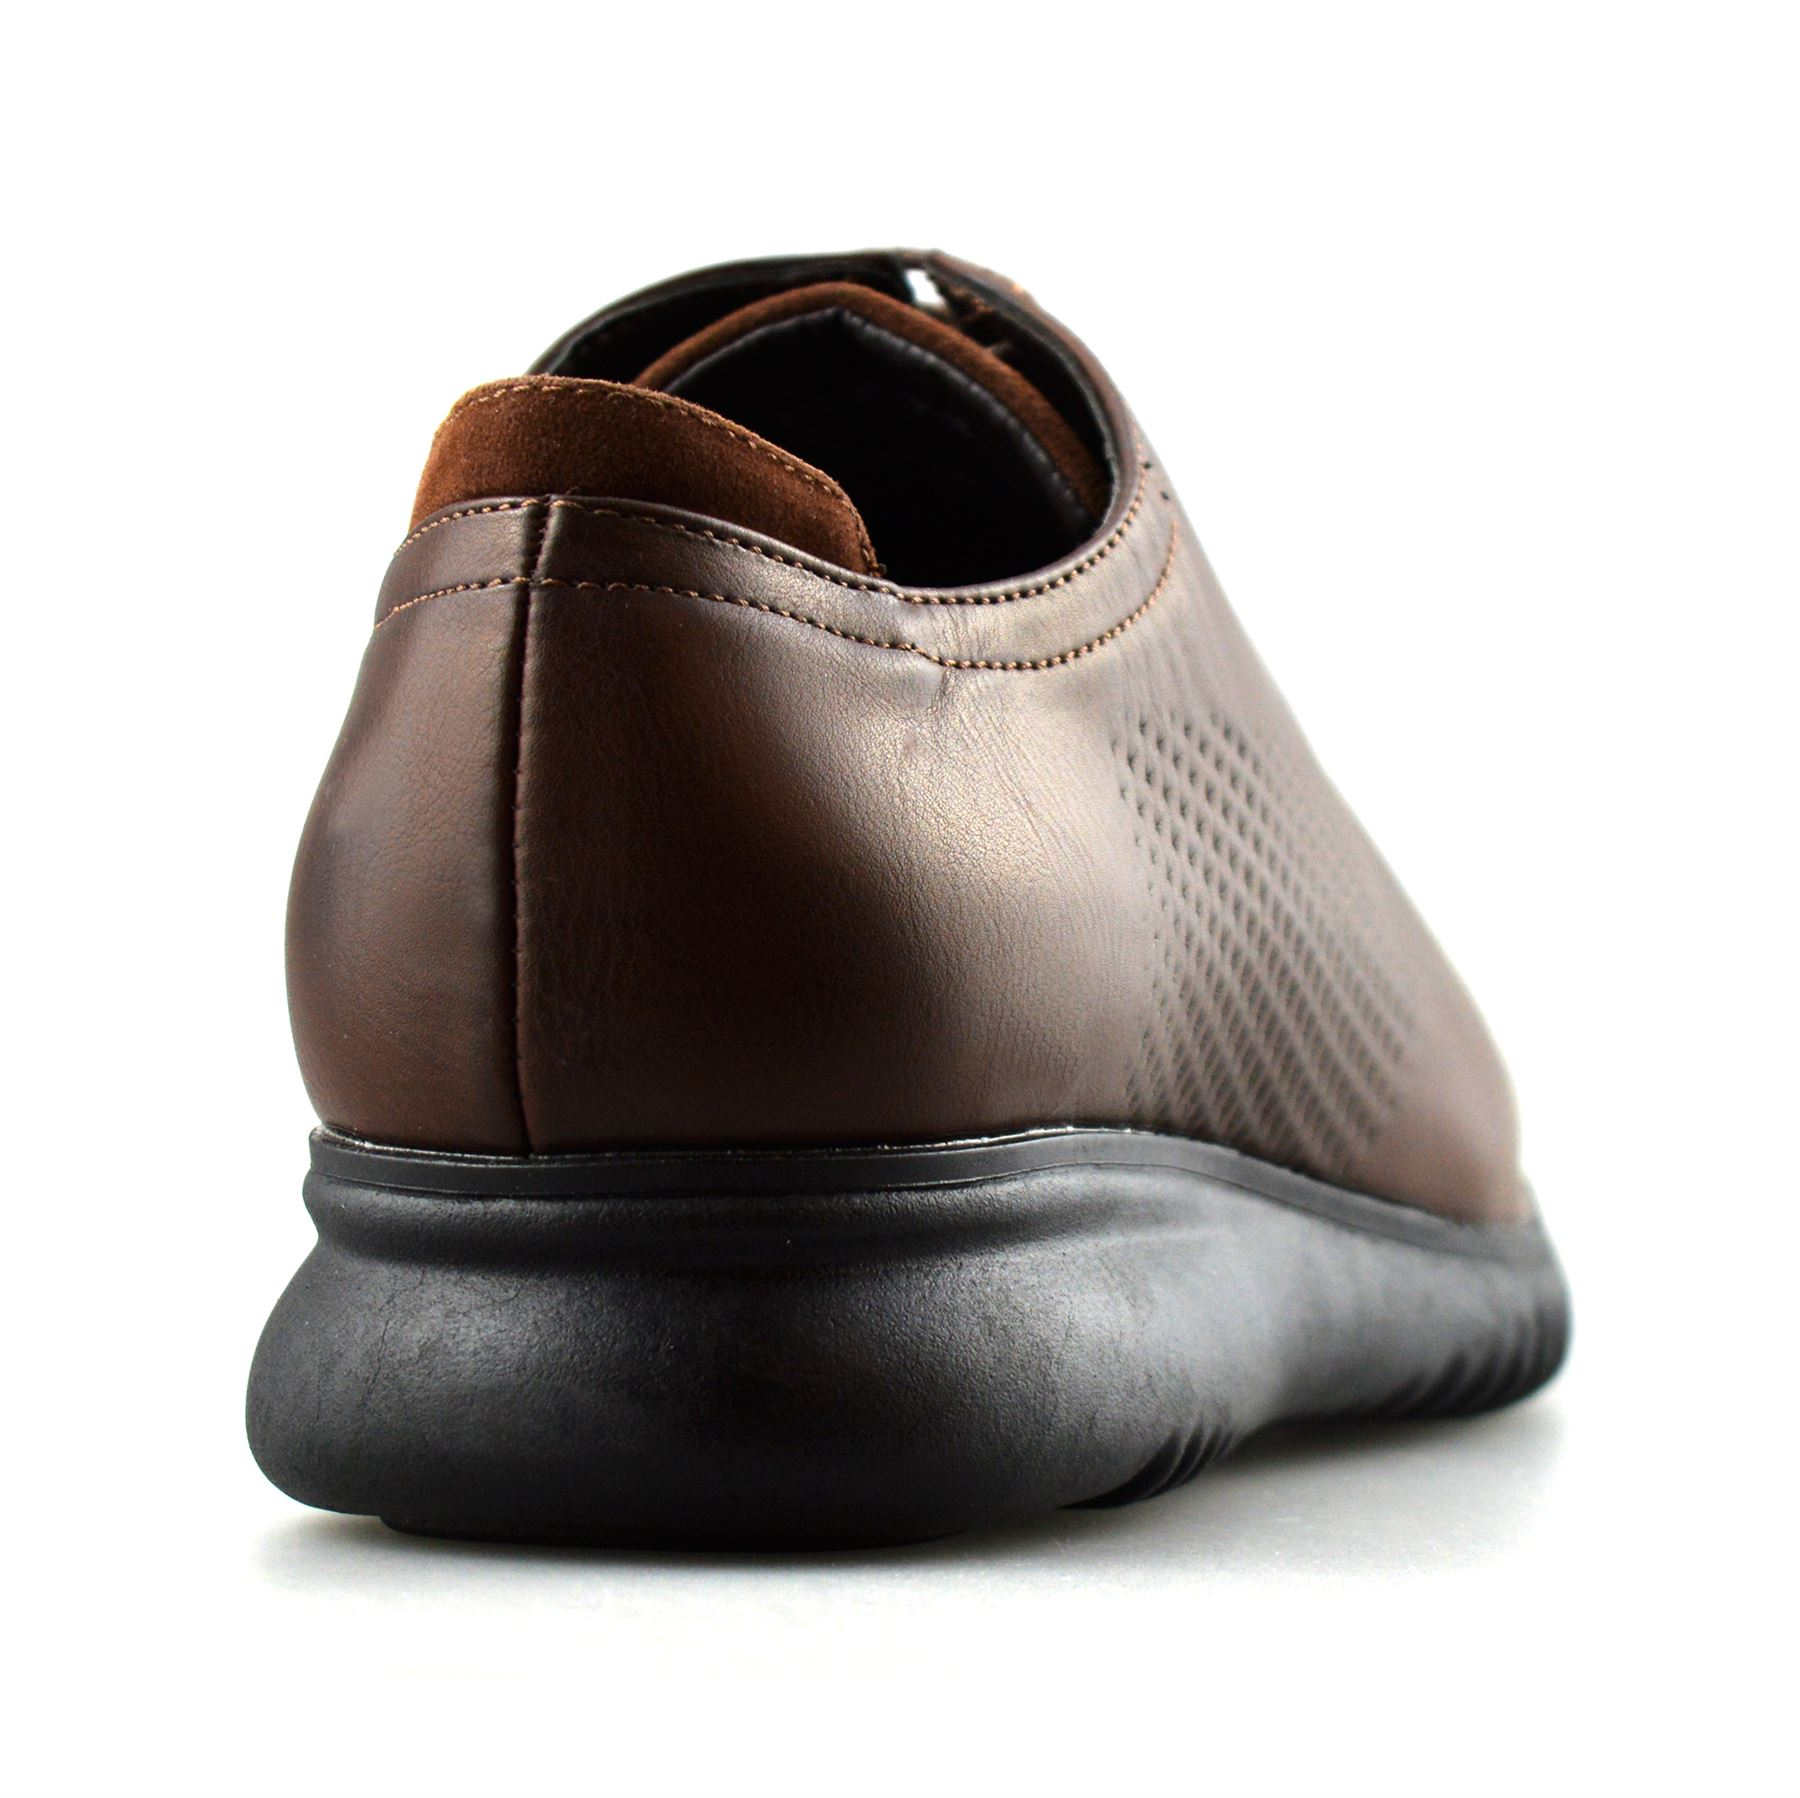 Mens-Casual-Smart-Lace-Up-Oxford-Brogue-Walking-Work-Office-Trainers-Shoes-Size thumbnail 21